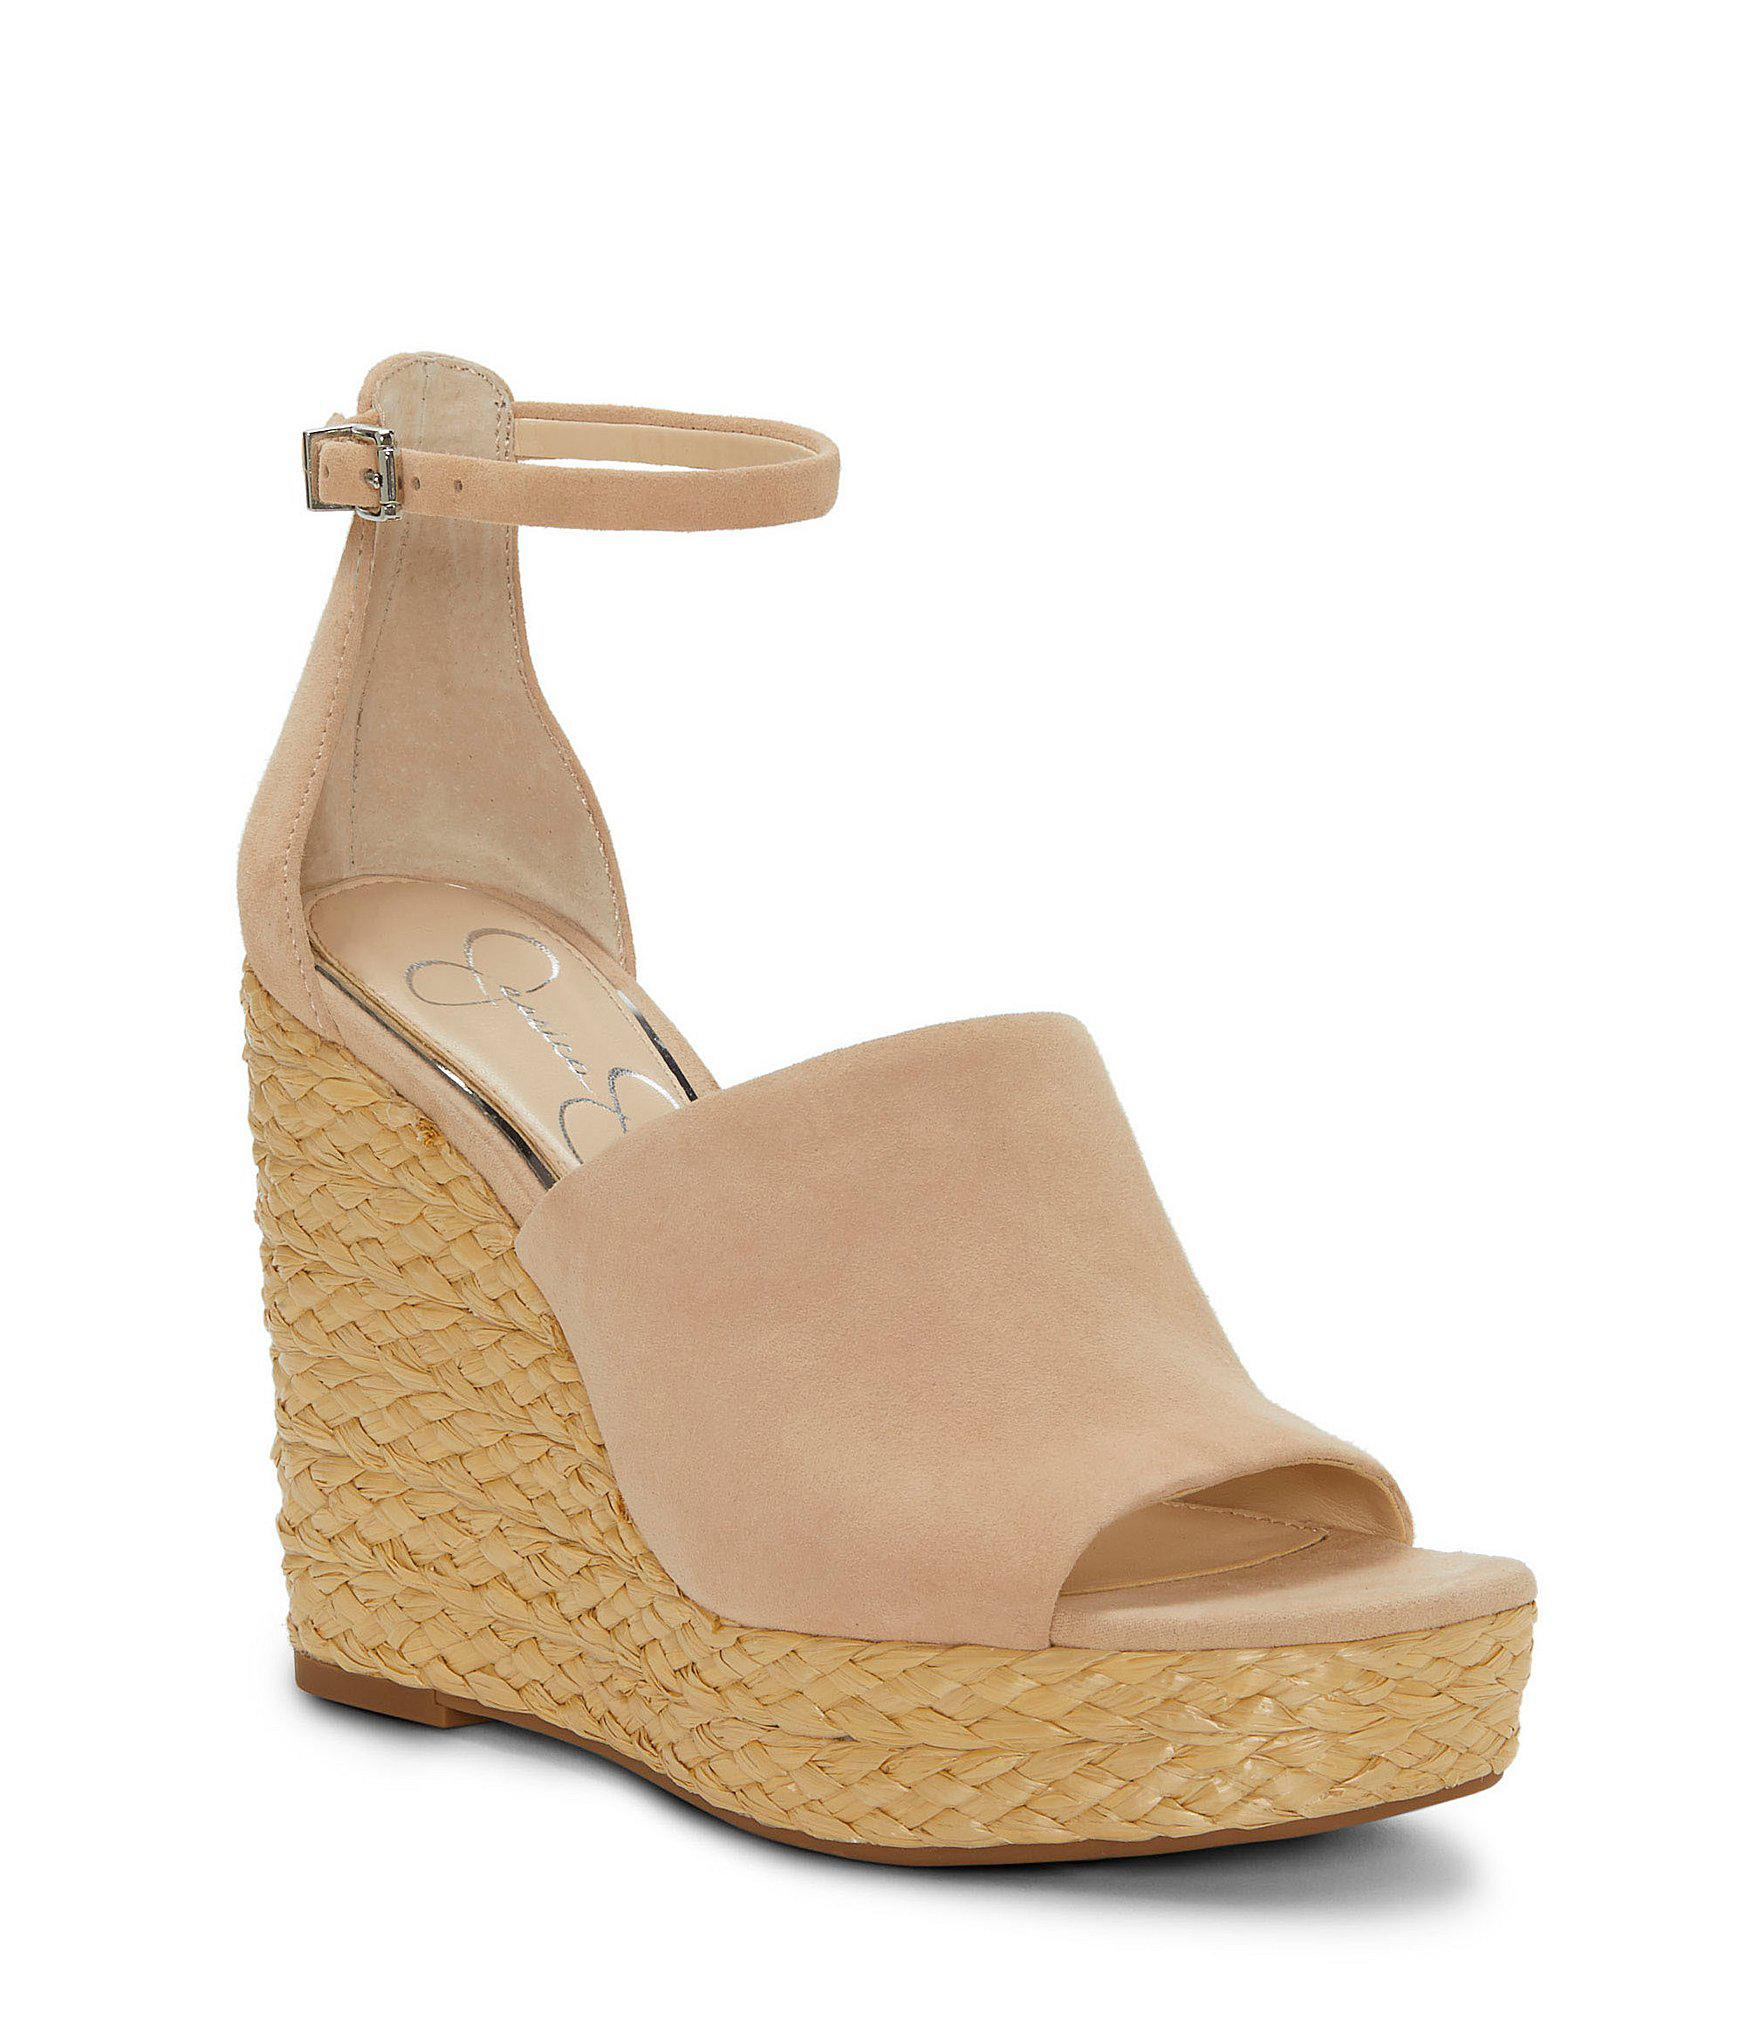 f2d94c25068 Jessica Simpson Suella Suede Leather Raffia Wrap Wedges in Natural ...